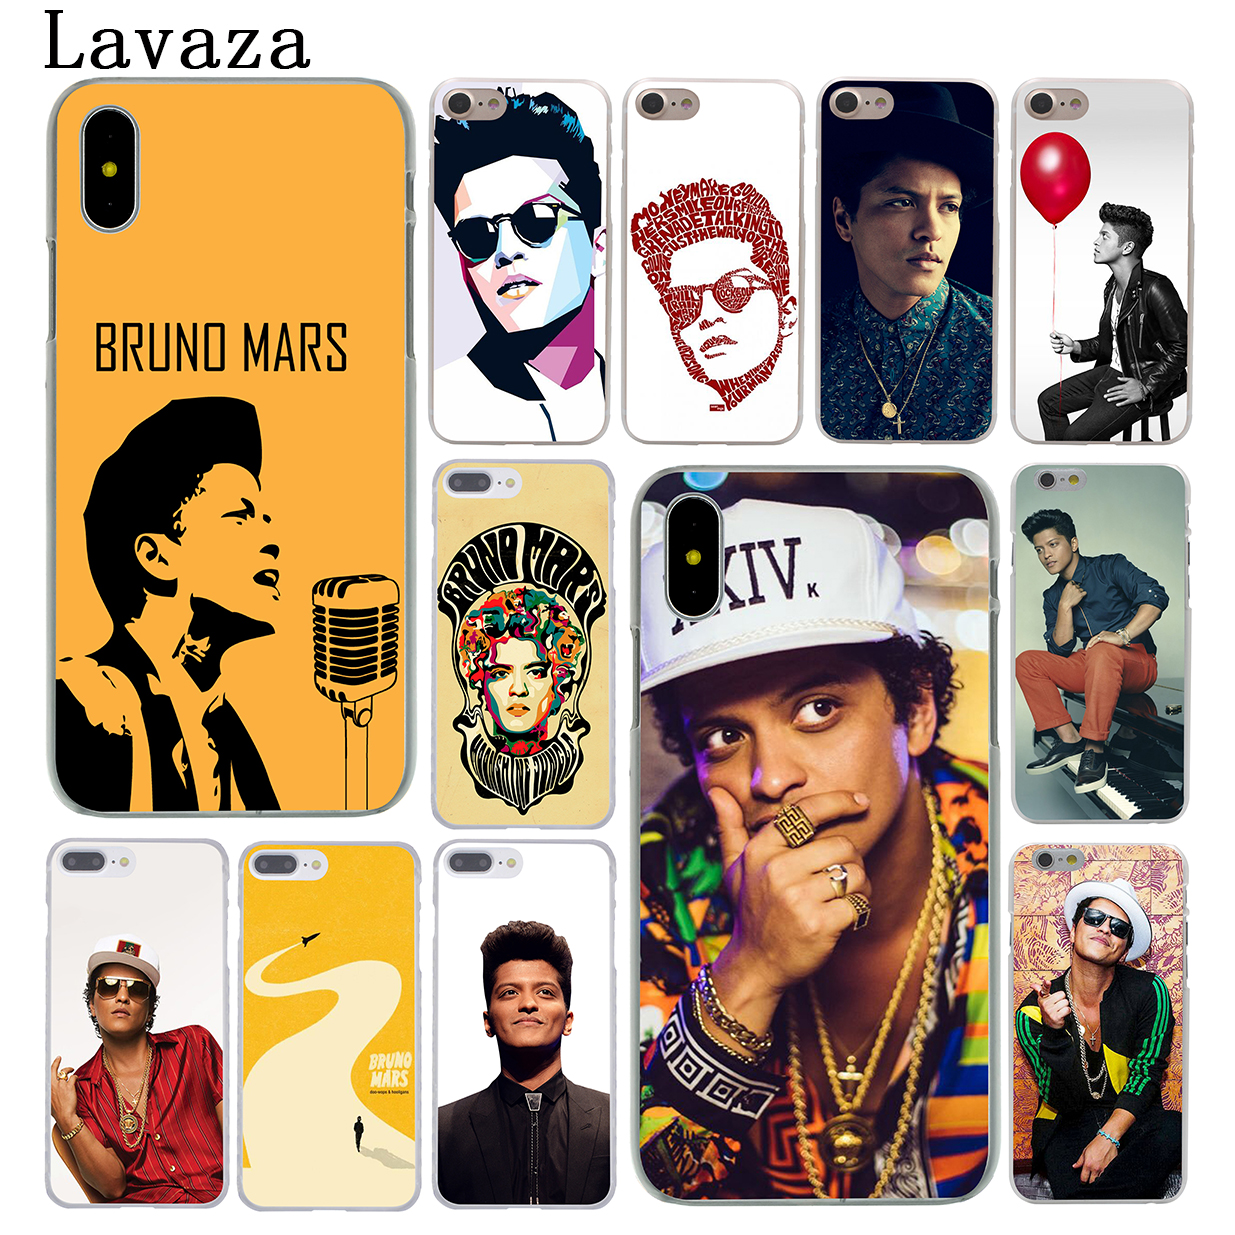 Lavaza Bruno Mars Hard Phone Case for Apple iPhone 6 6s 7 8 Plus 4 4S 5 5S SE 5C Cover for iPhone XS Max XR Cases